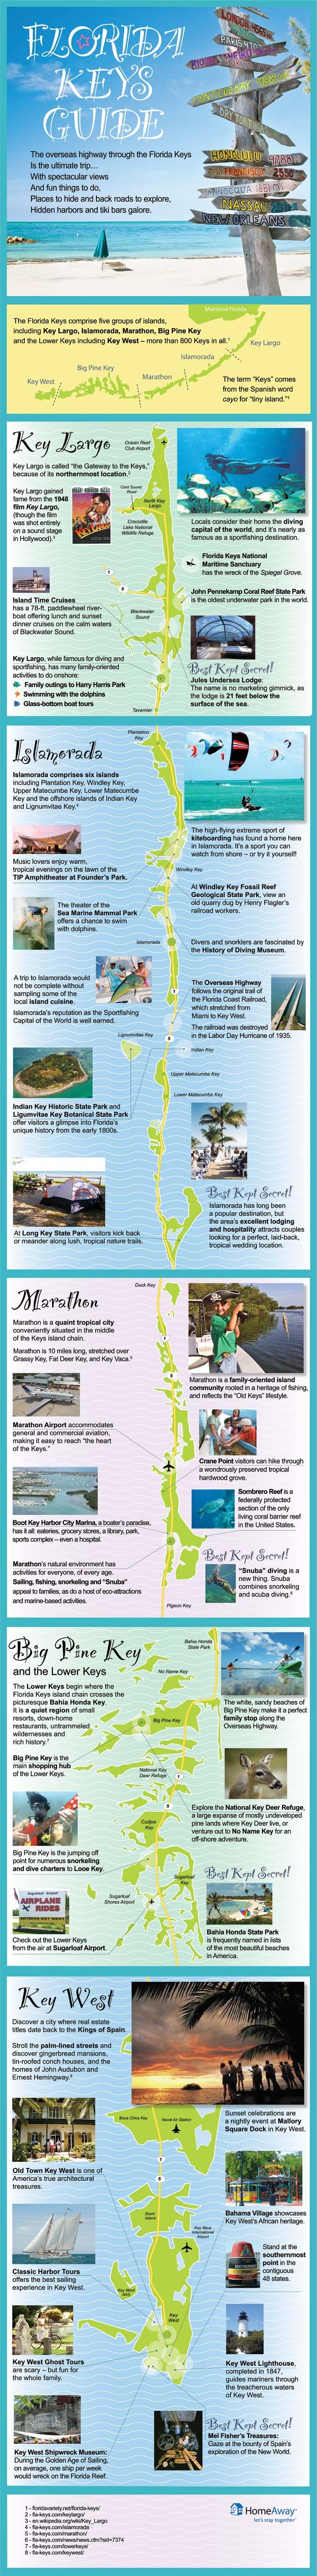 The Florida Keys Guide